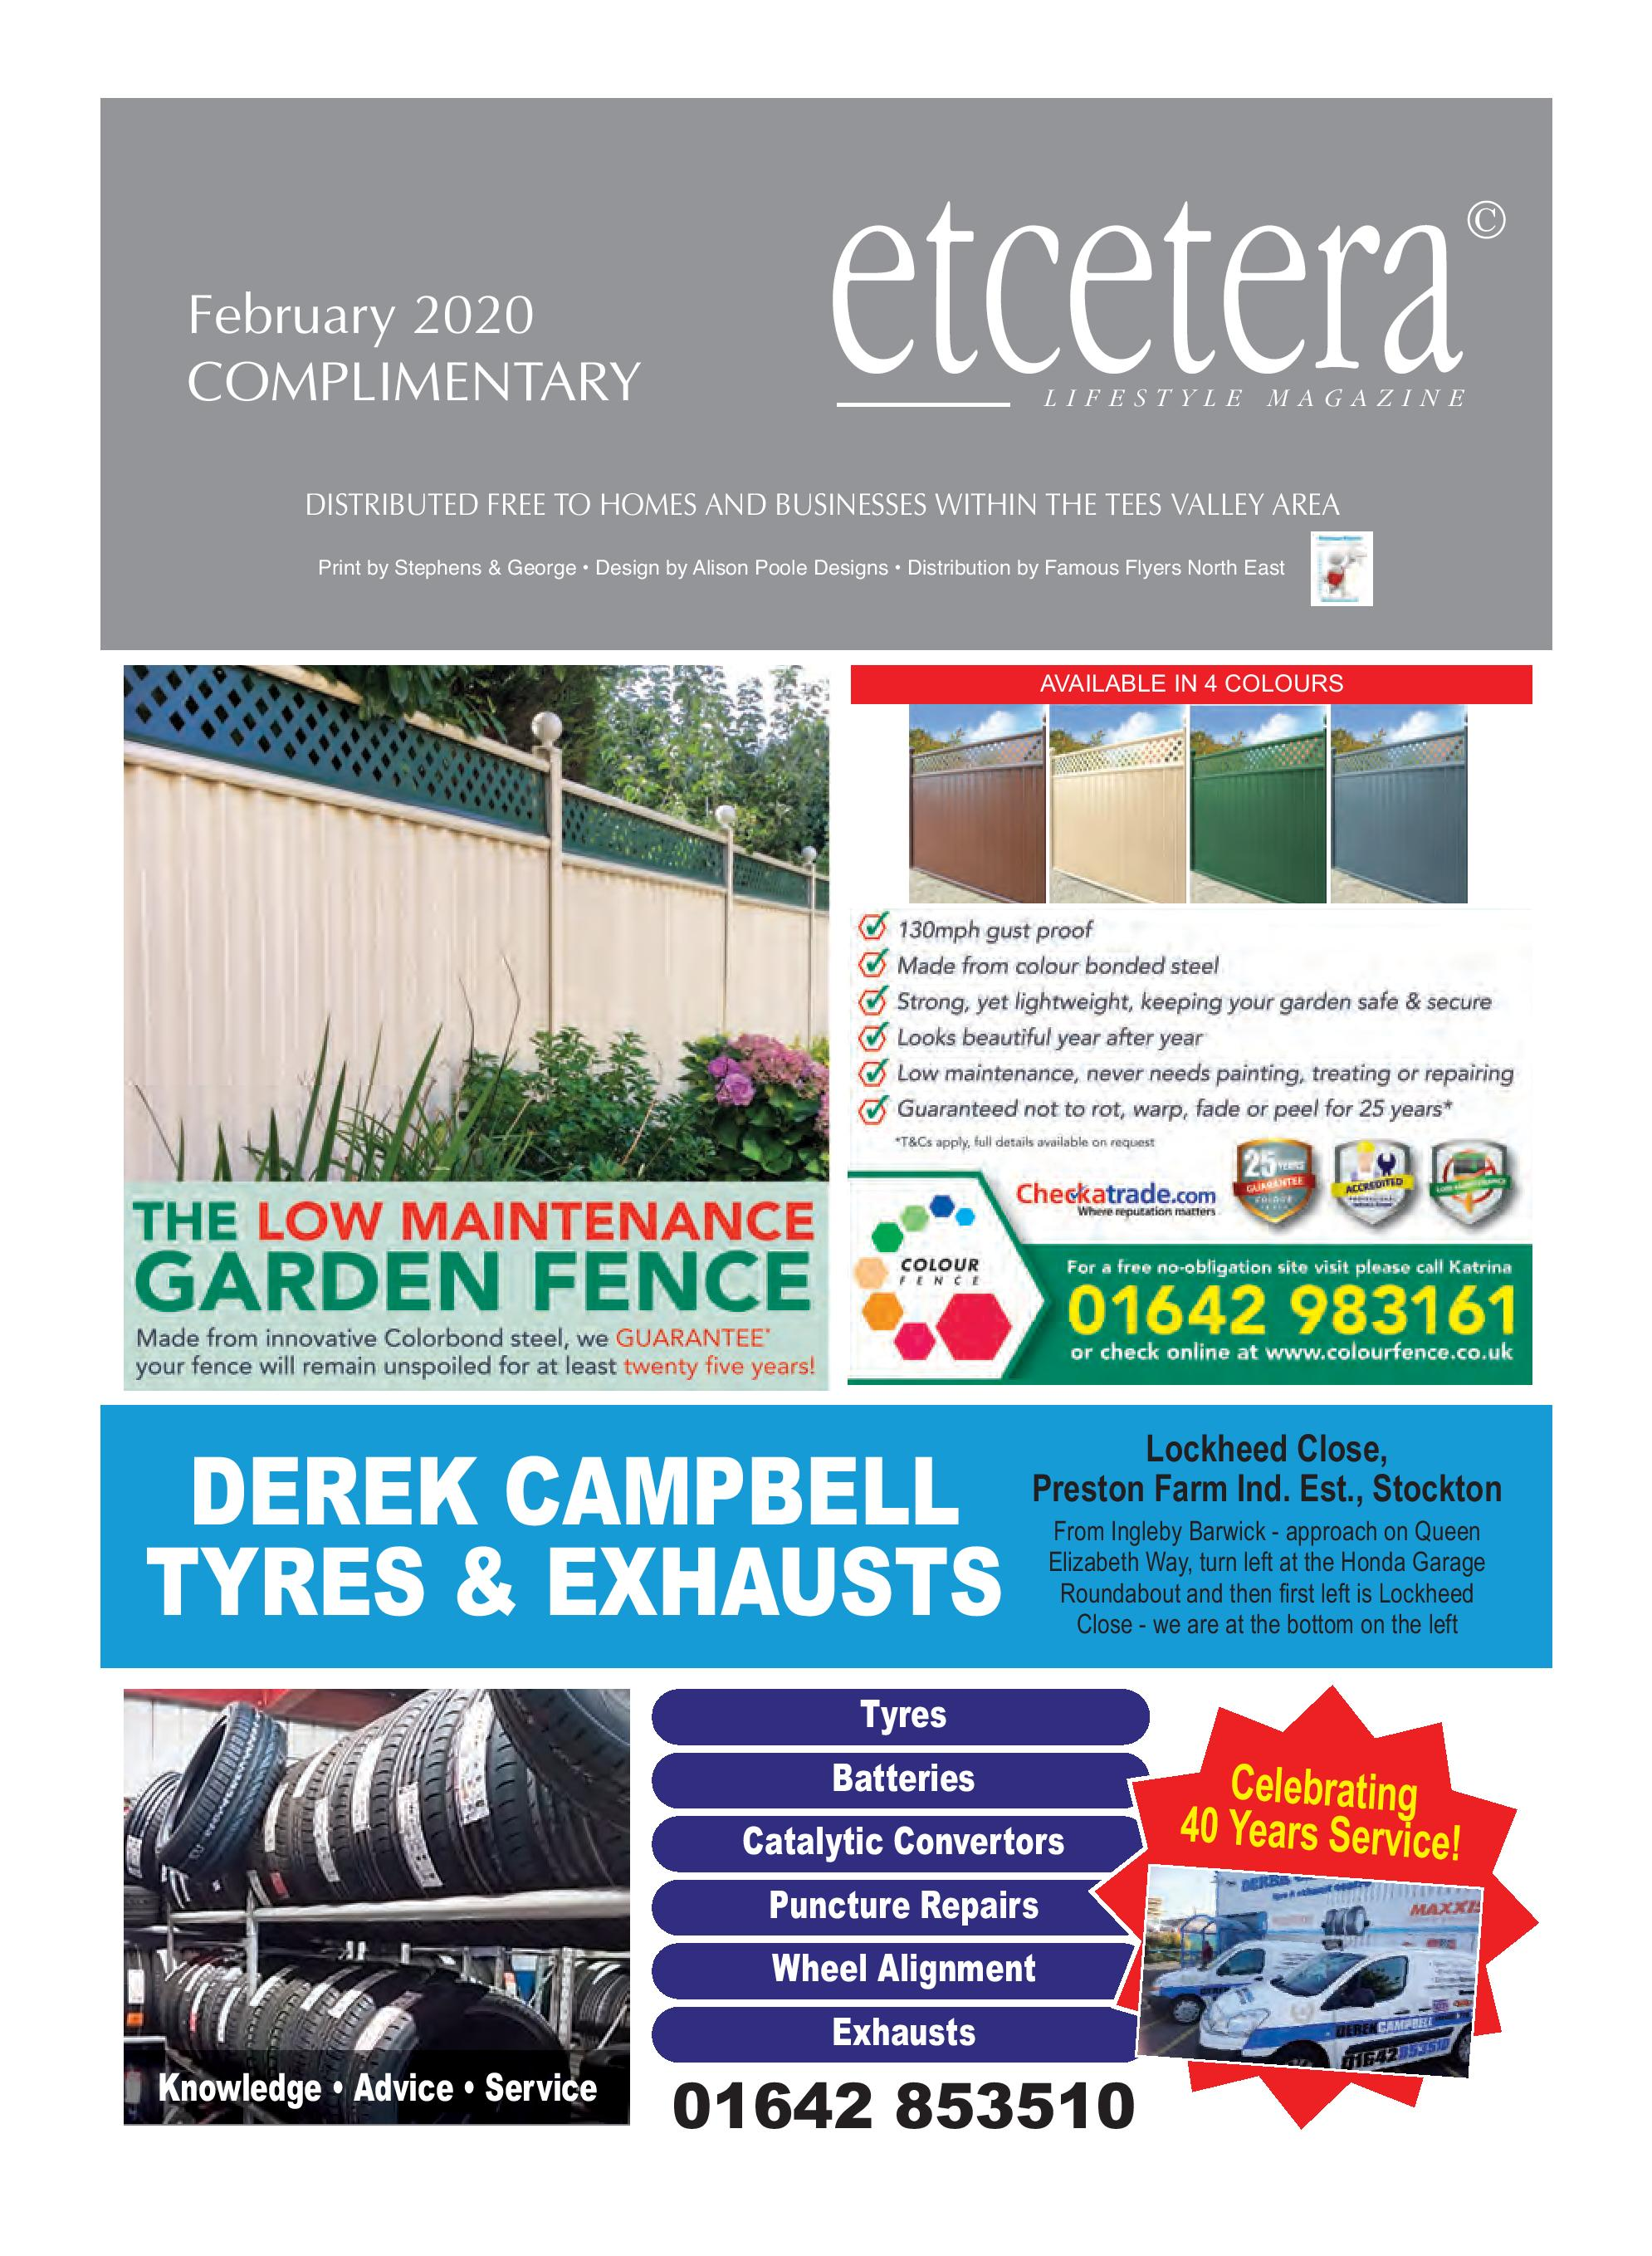 Etcetera Lifestyle Magazine - February 2020